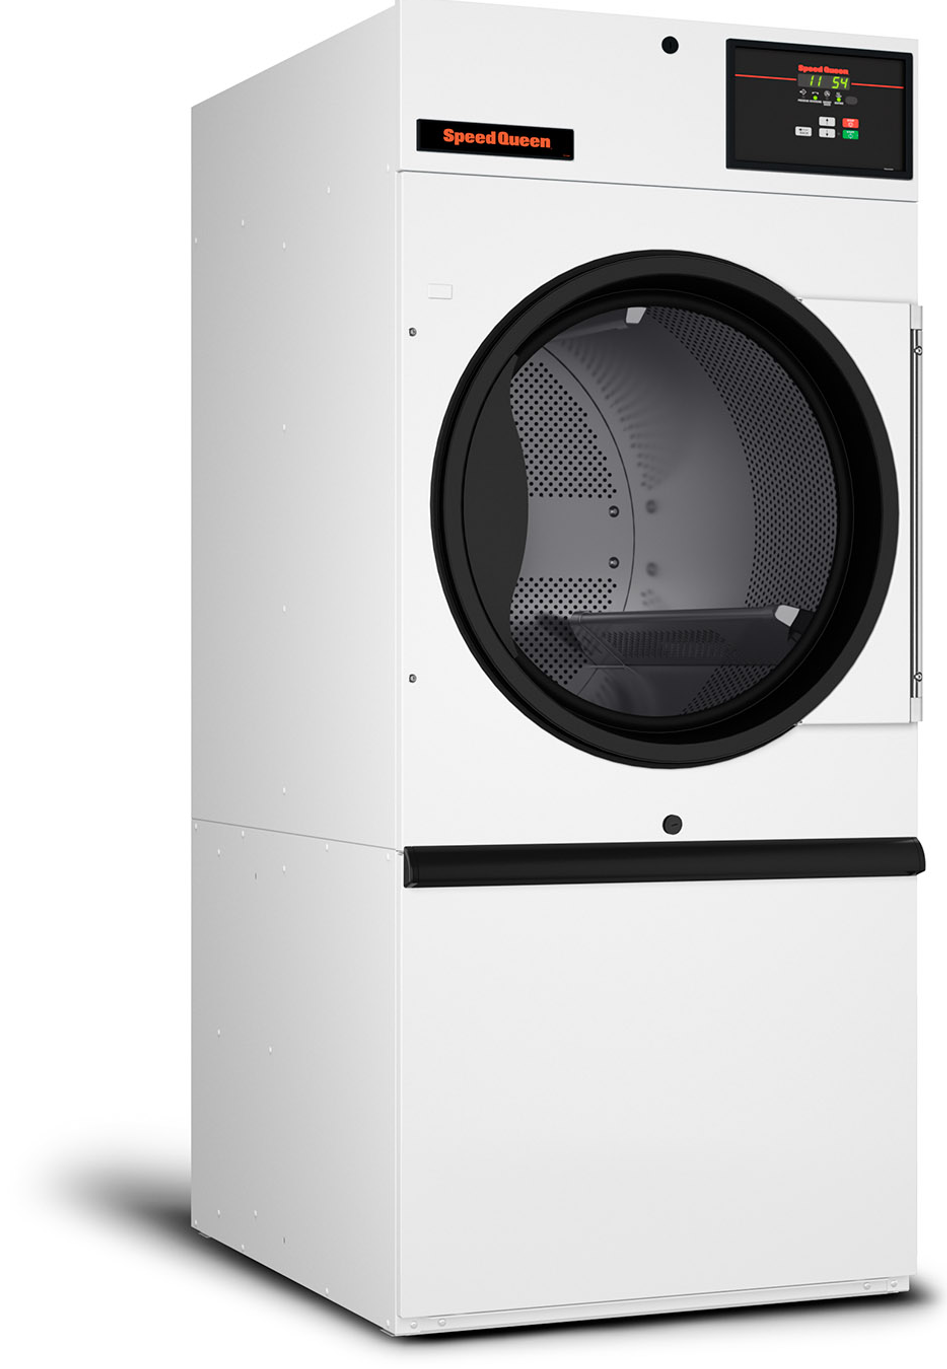 Speed Queen Non-Vended Single Pocket Tumble Dryer